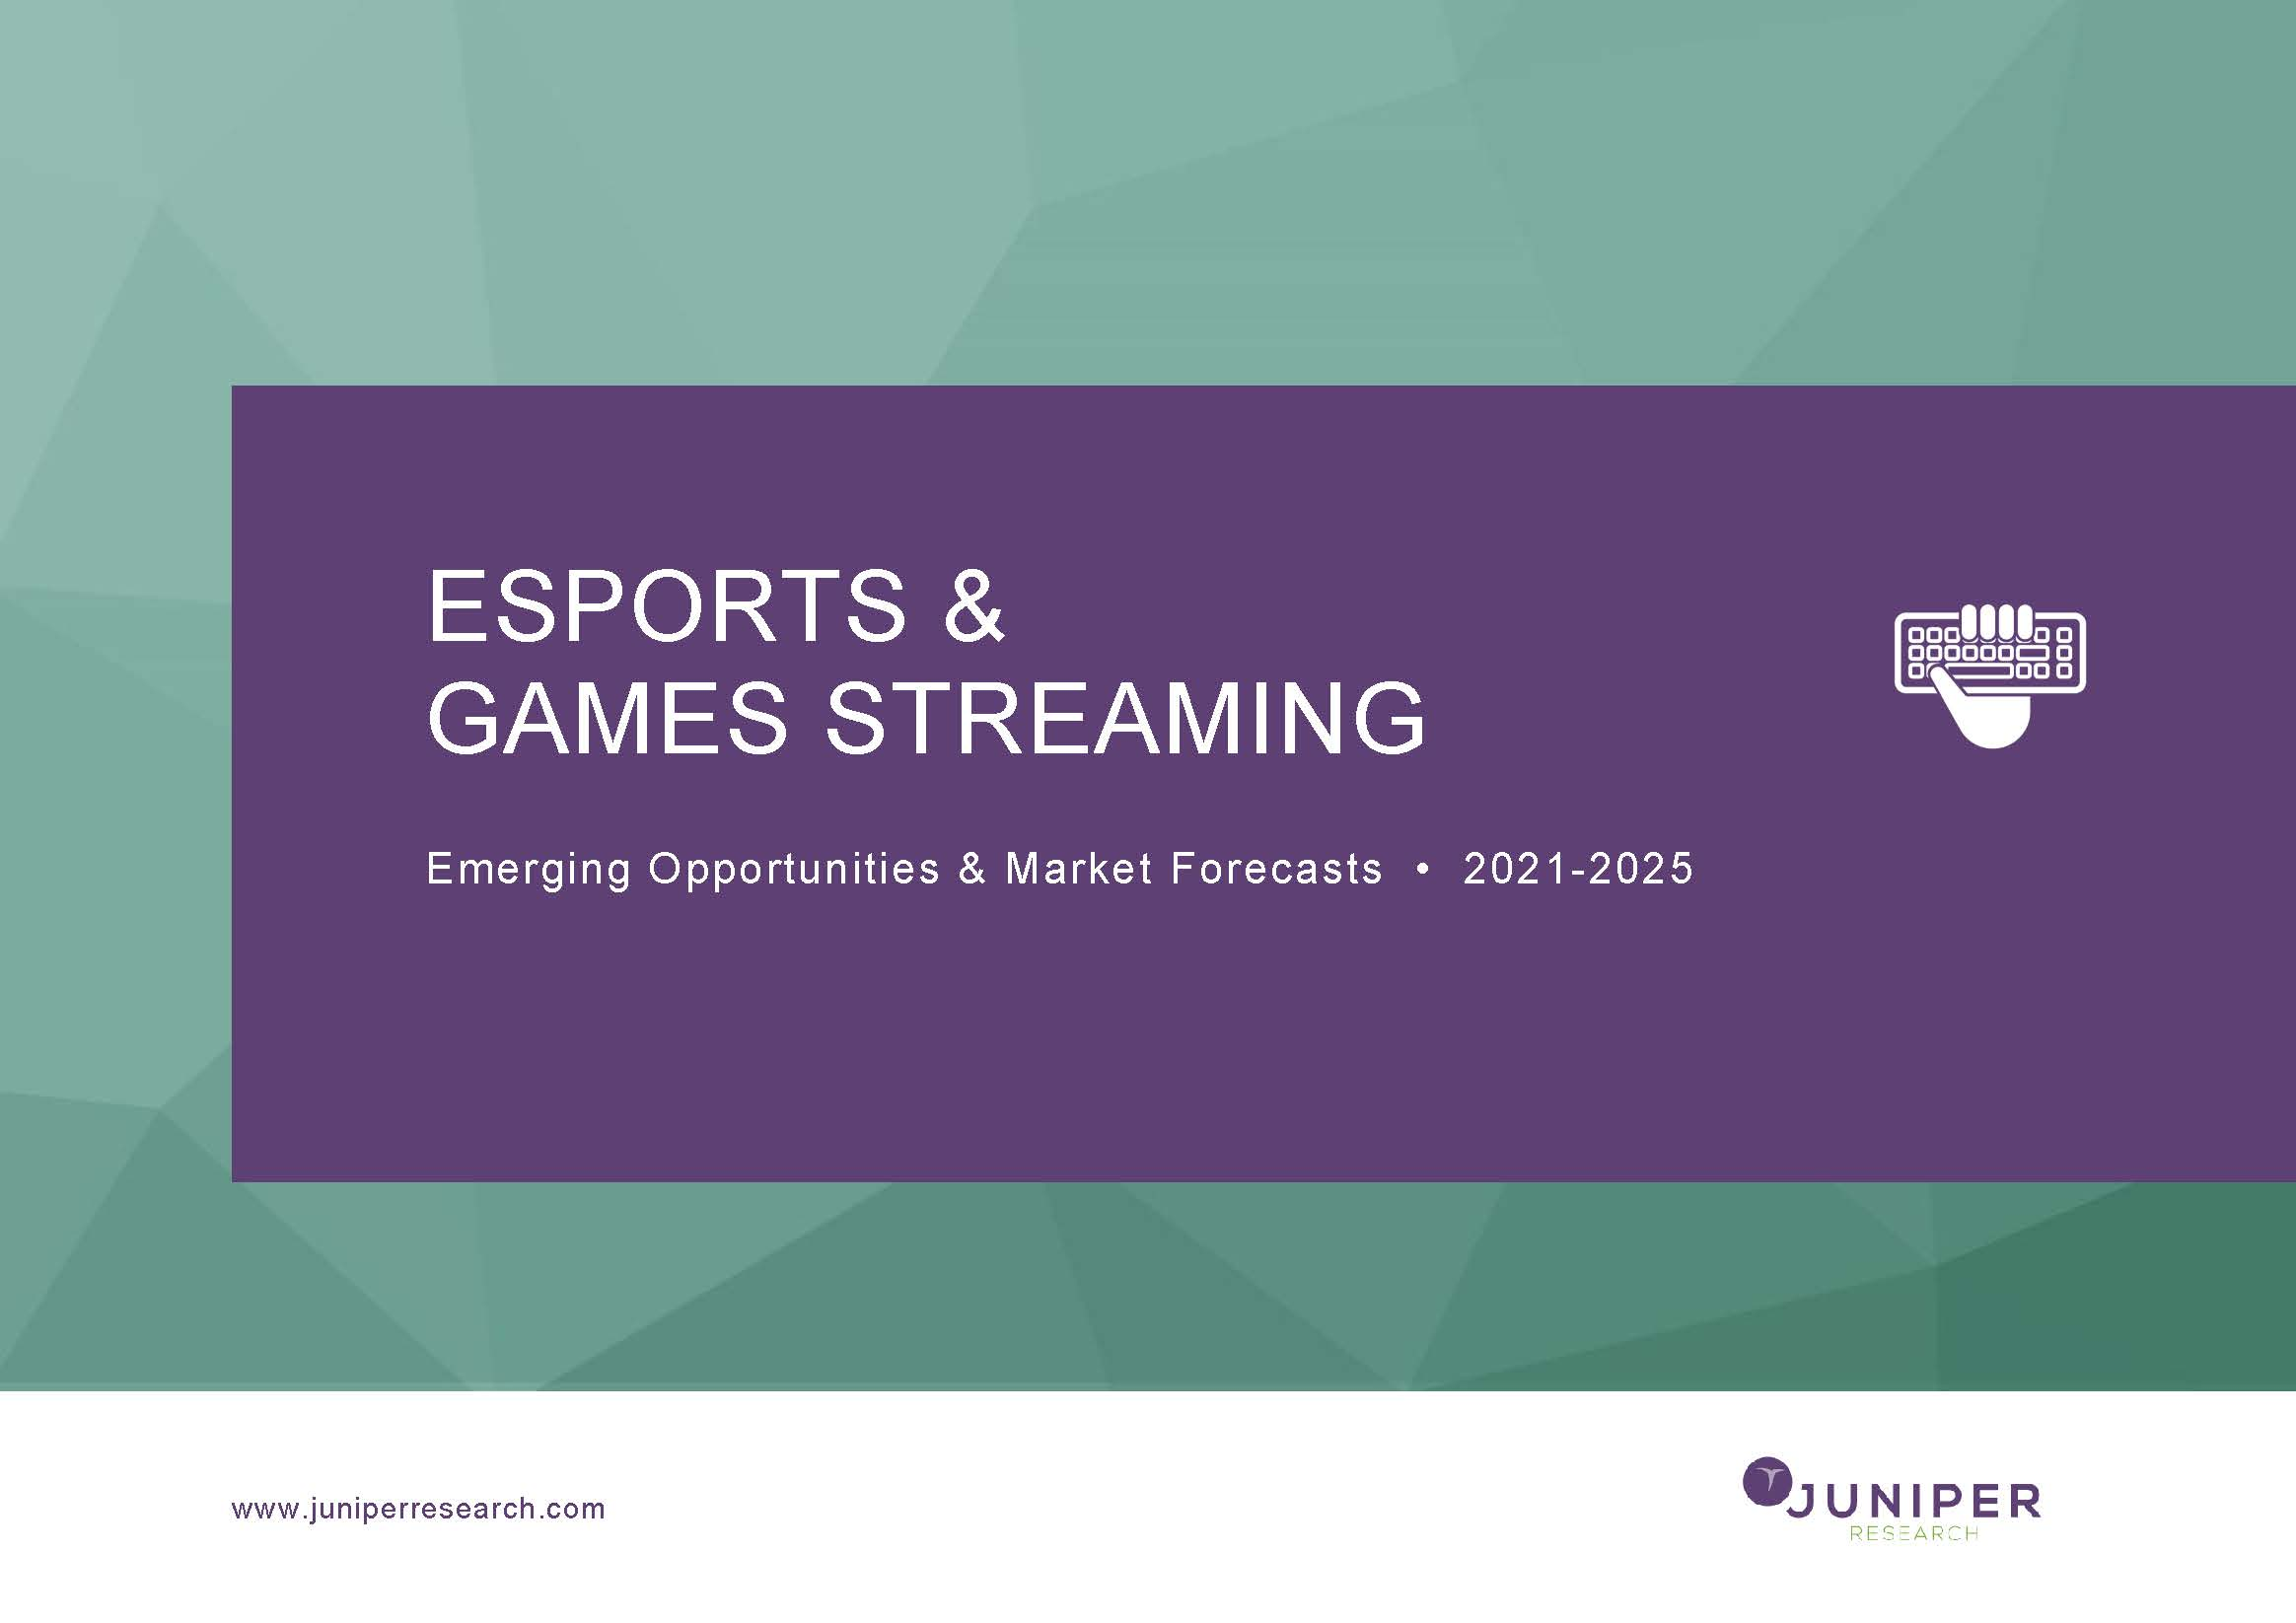 eSports & Games Streaming